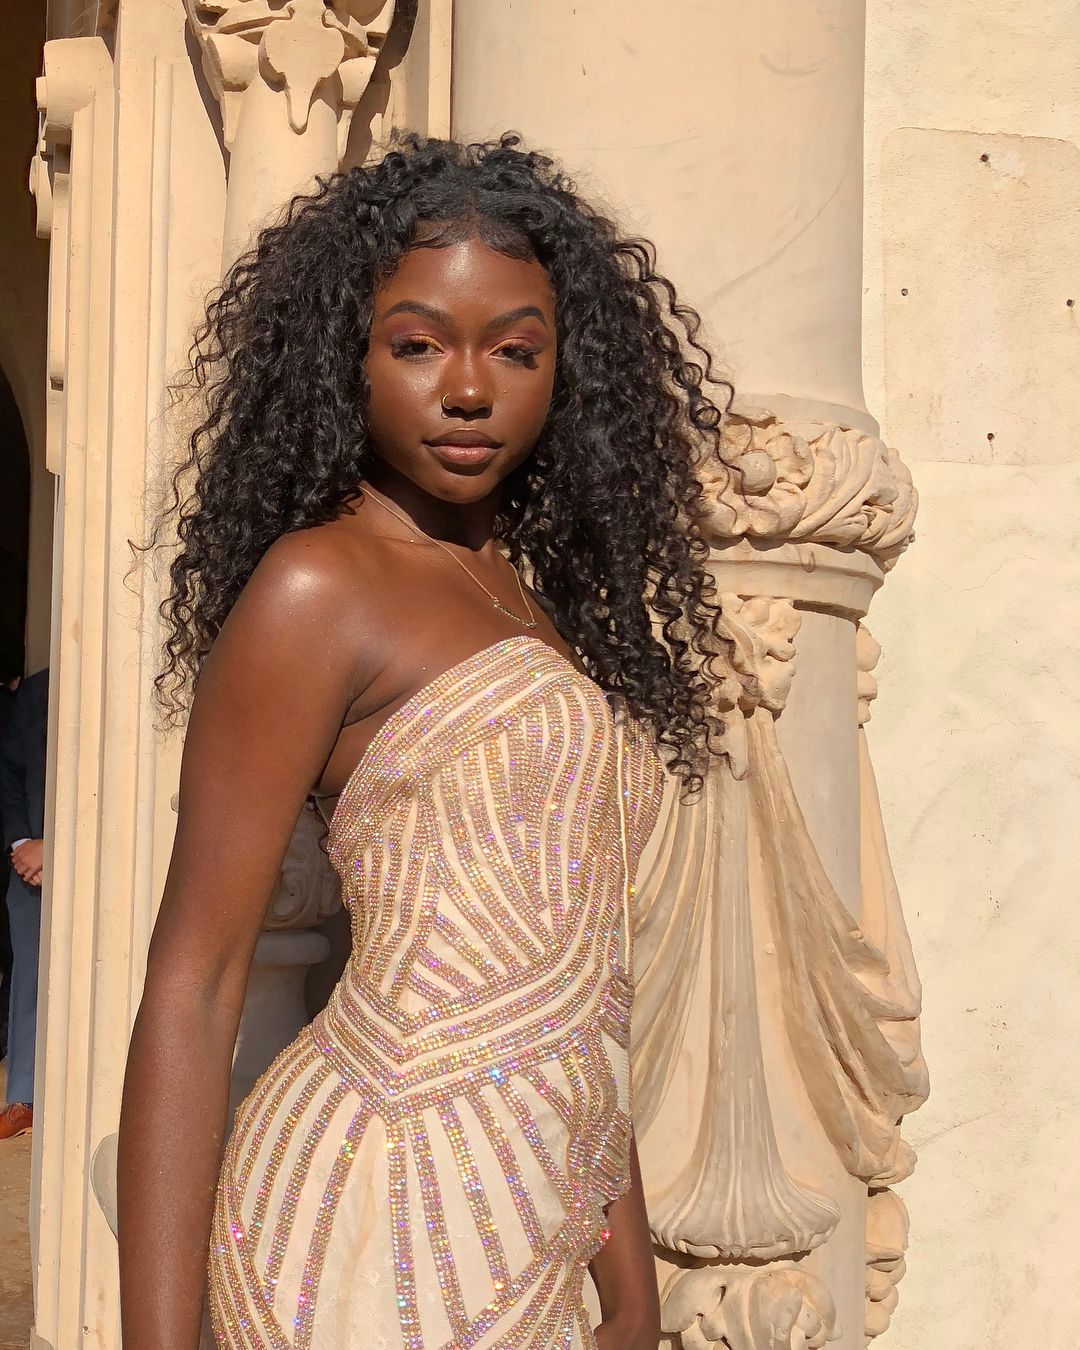 Catch my diana ross vibes prom2018 beauties in 2018 - Catch de fille ...